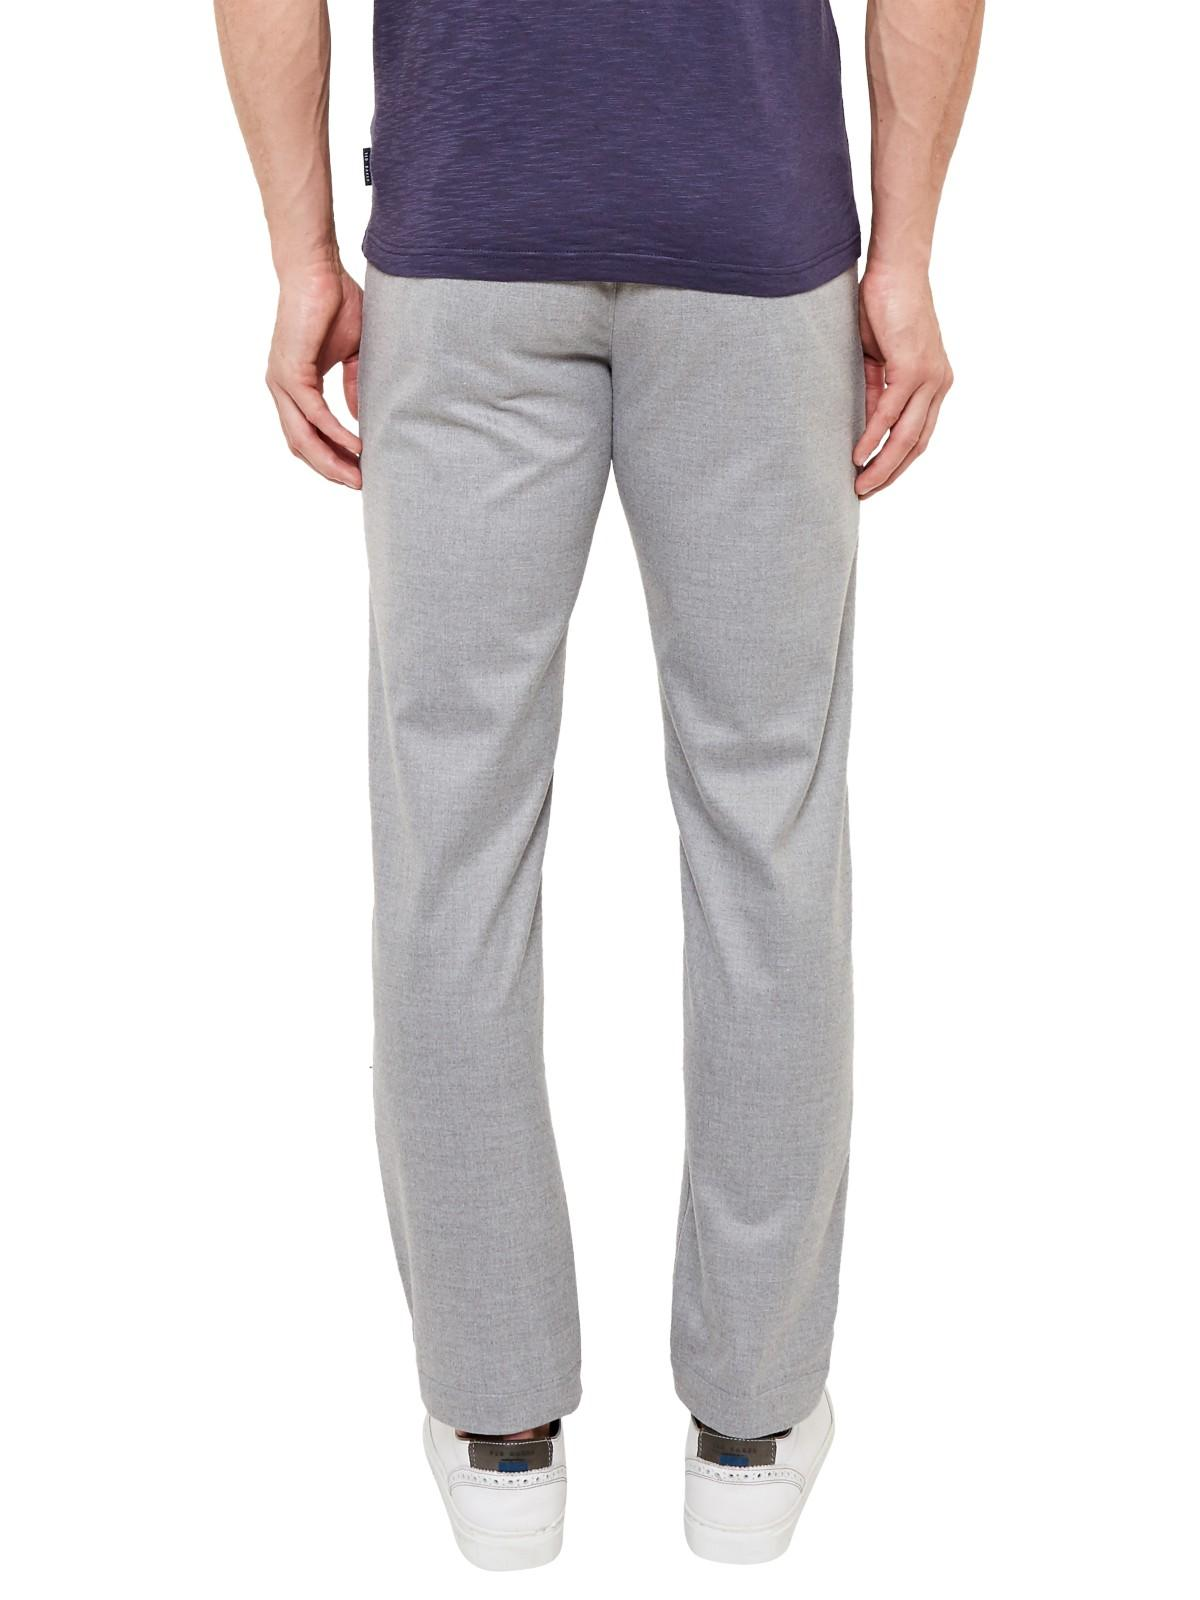 Ted Baker Synthetic Hiptony Cropped Trousers in Light (Grey) for Men